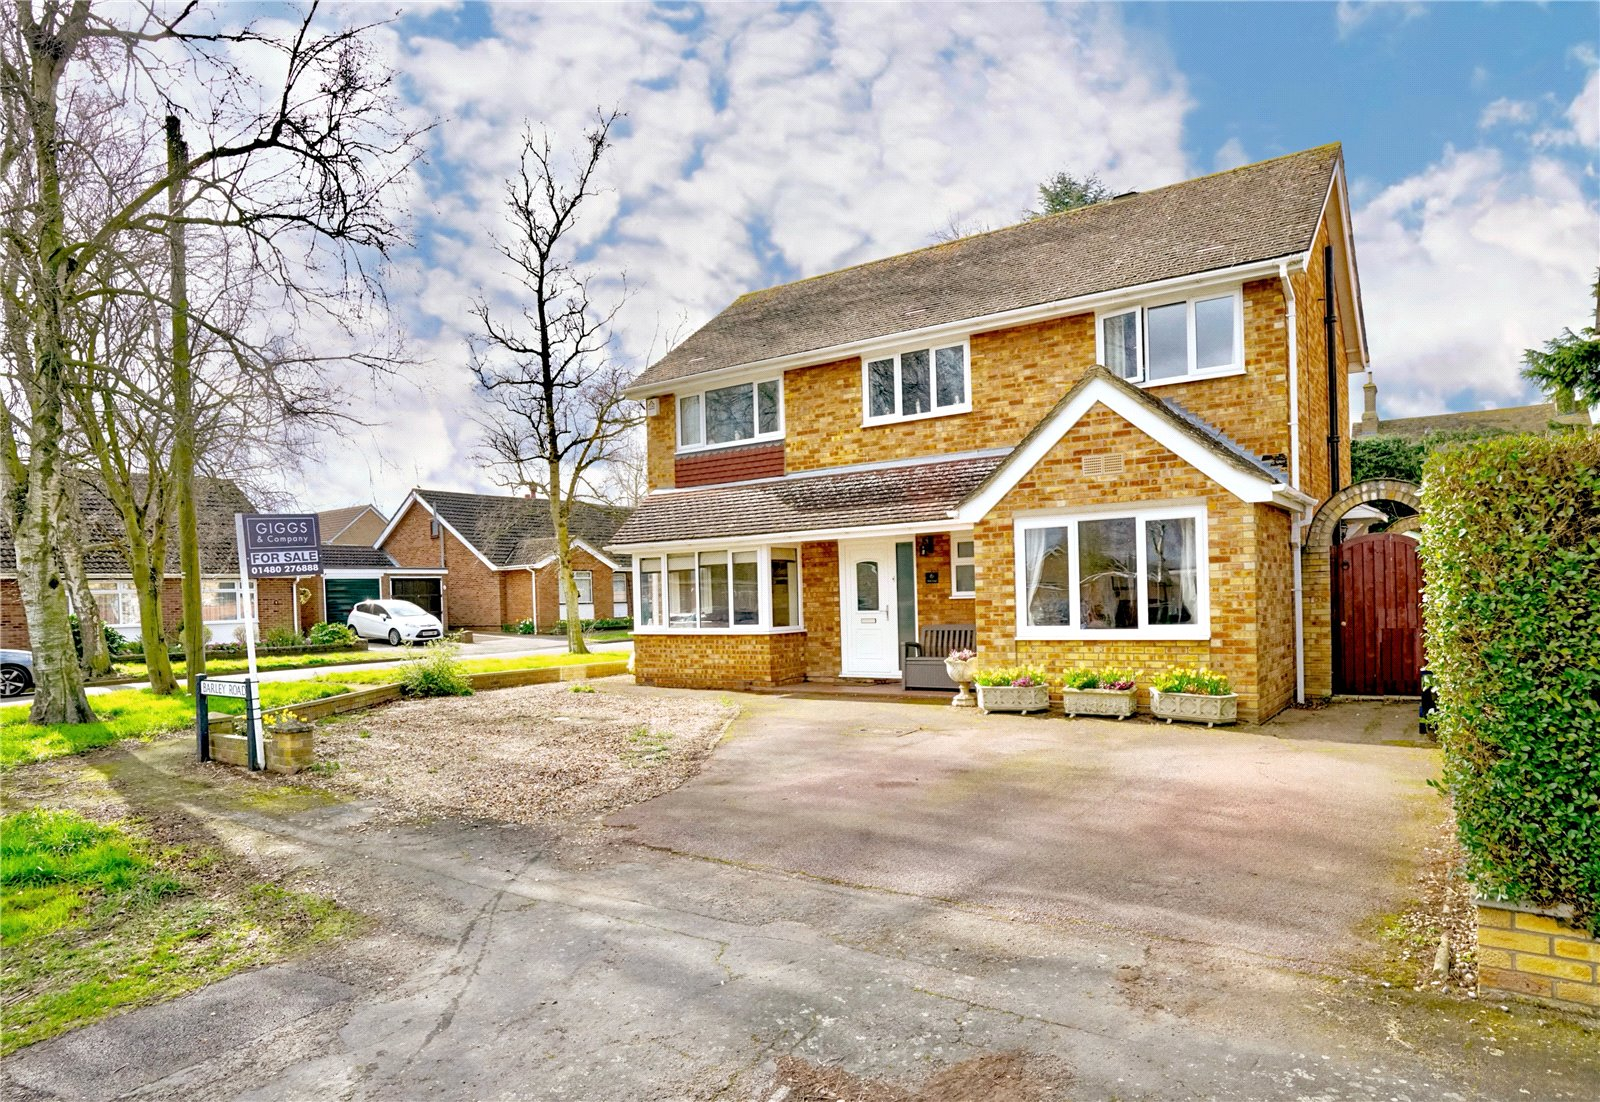 3 bed house for sale in Barley Road, Eaton Socon - Property Image 1